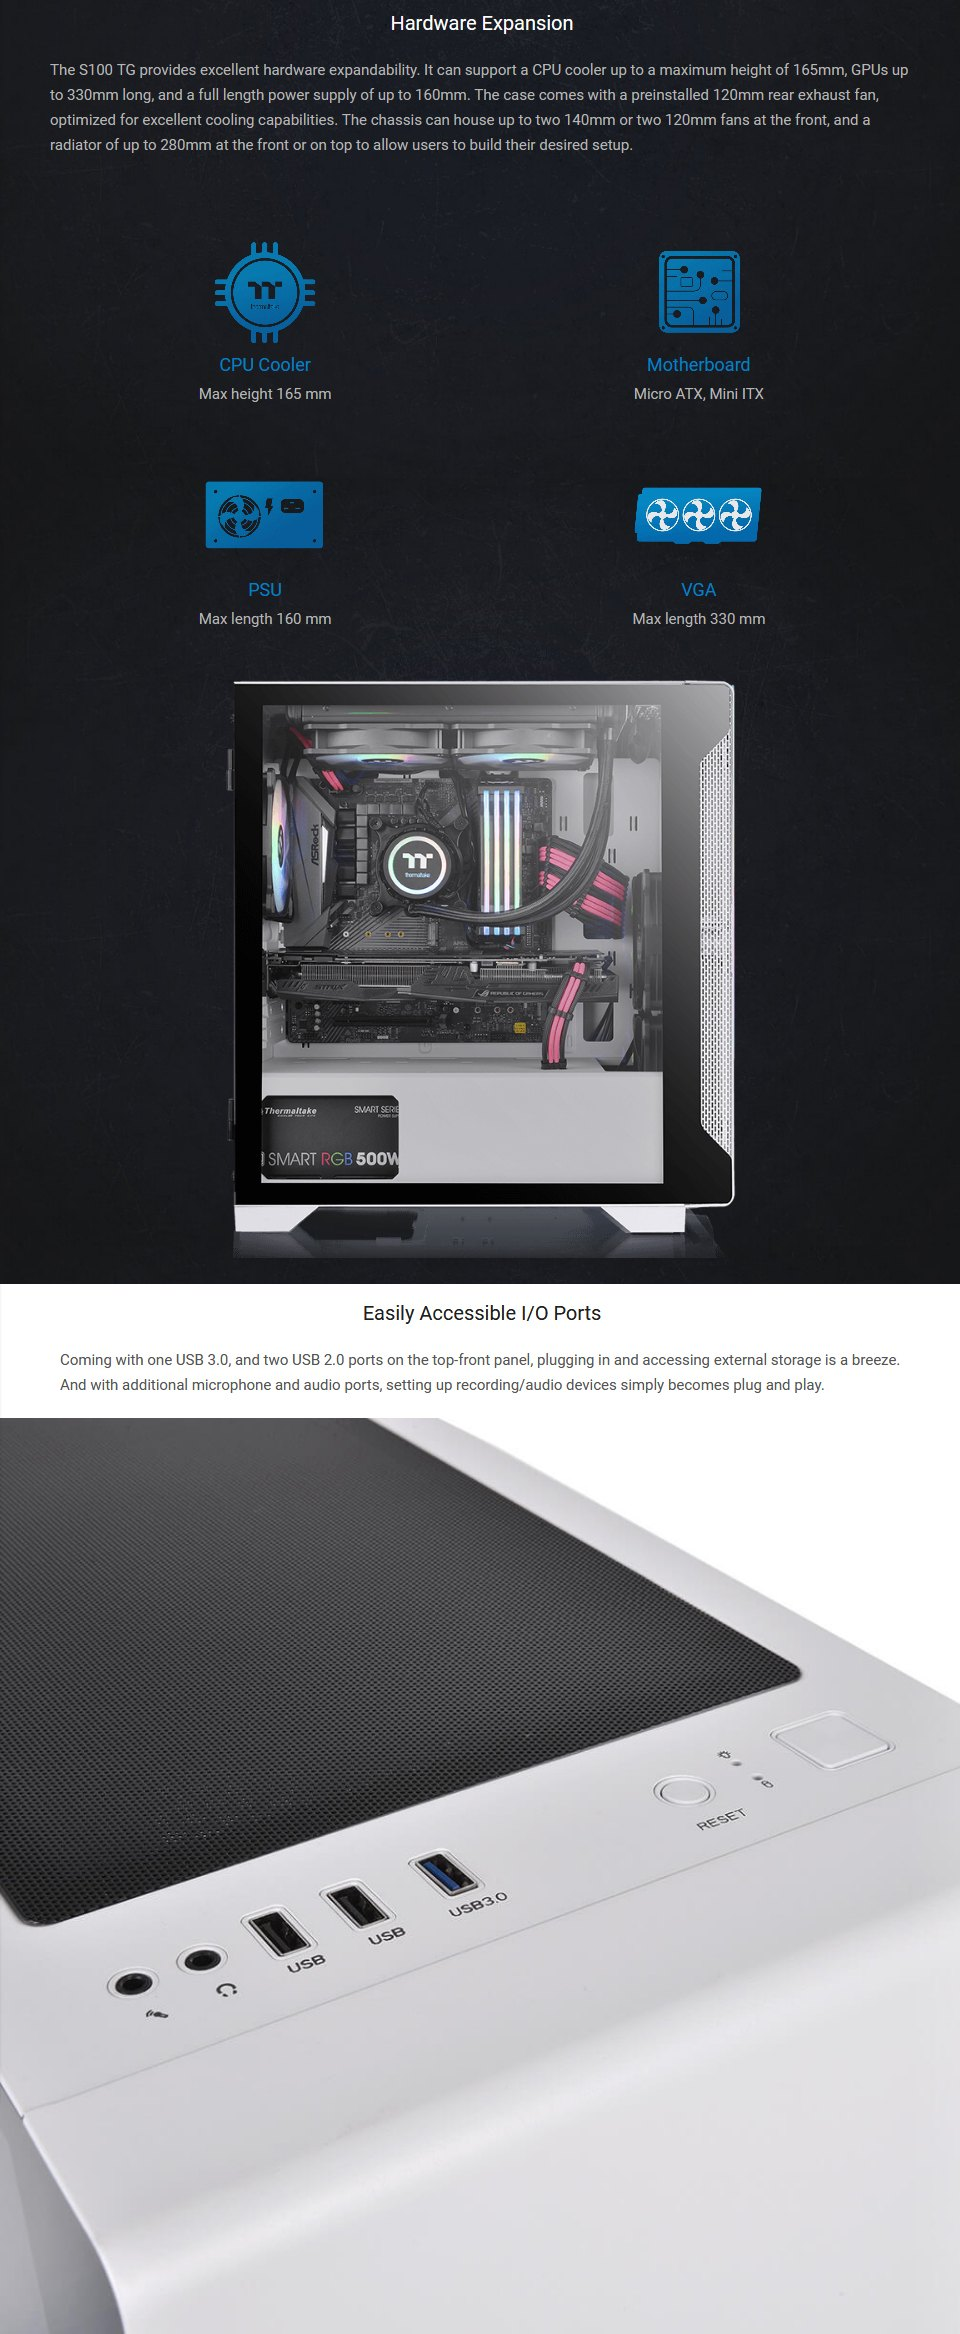 Thermaltake S100 Snow Edition Tempered Glass mATX Case features 3